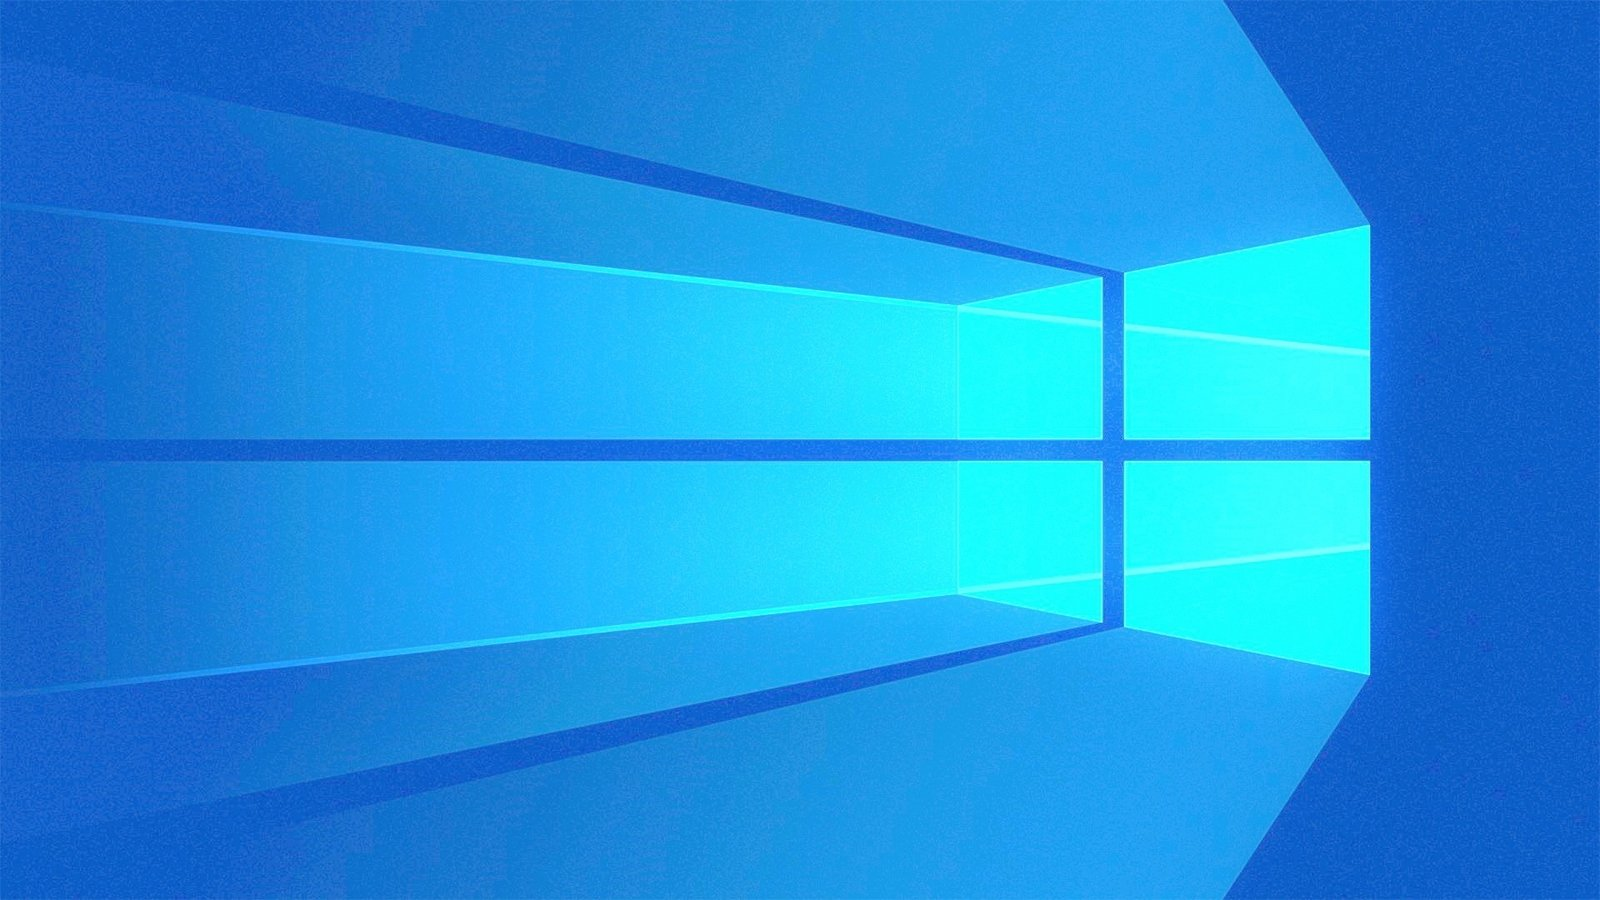 wallpaper do windows 10 azul claro